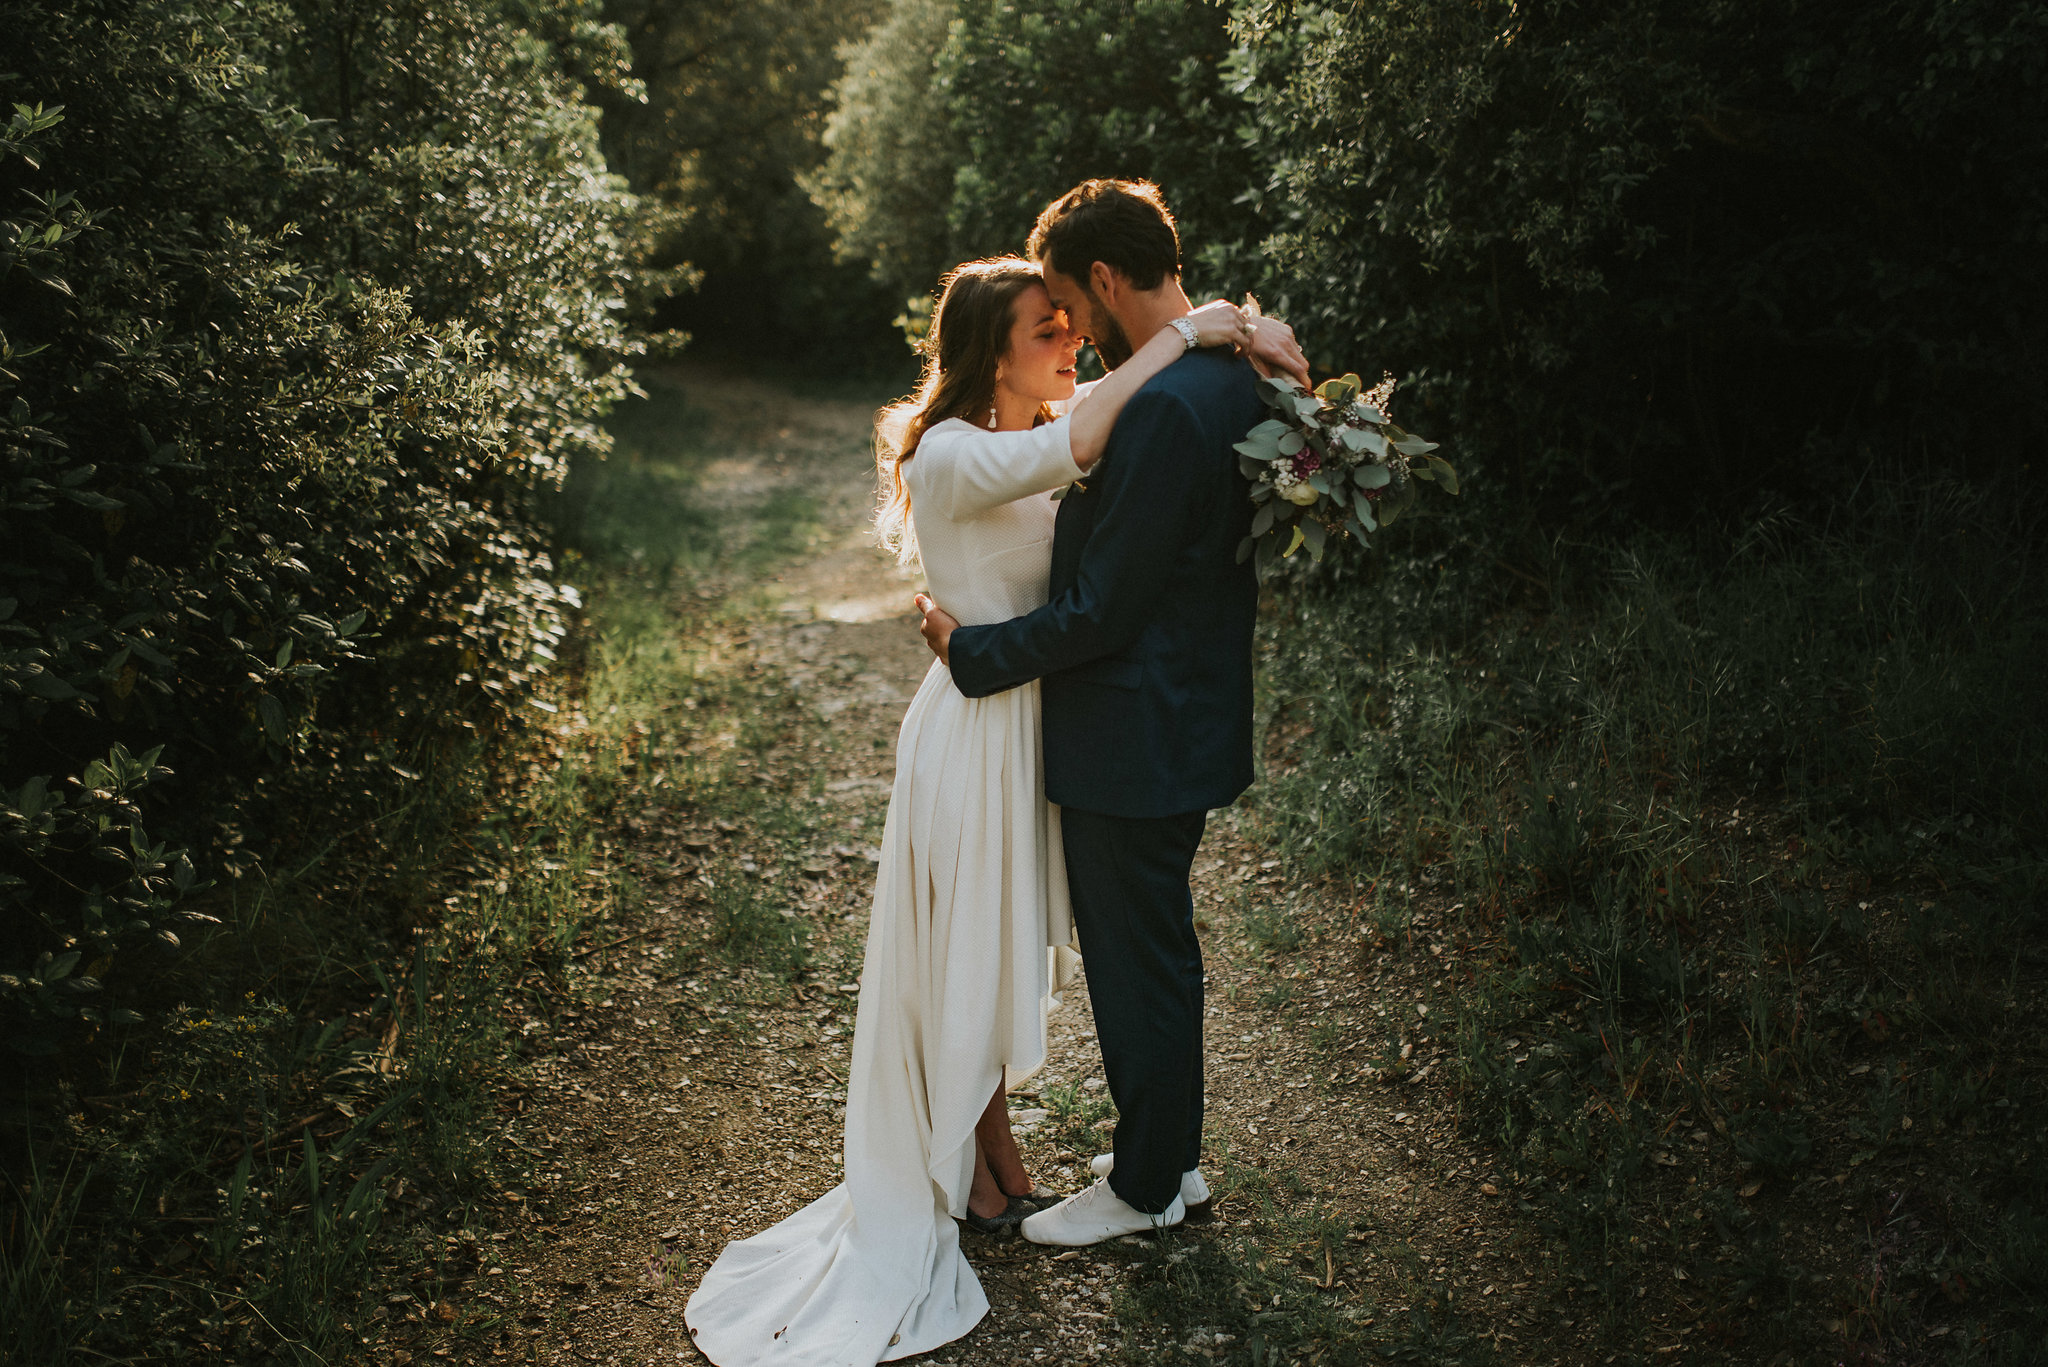 Manon&Theo_paulinaweddings-454